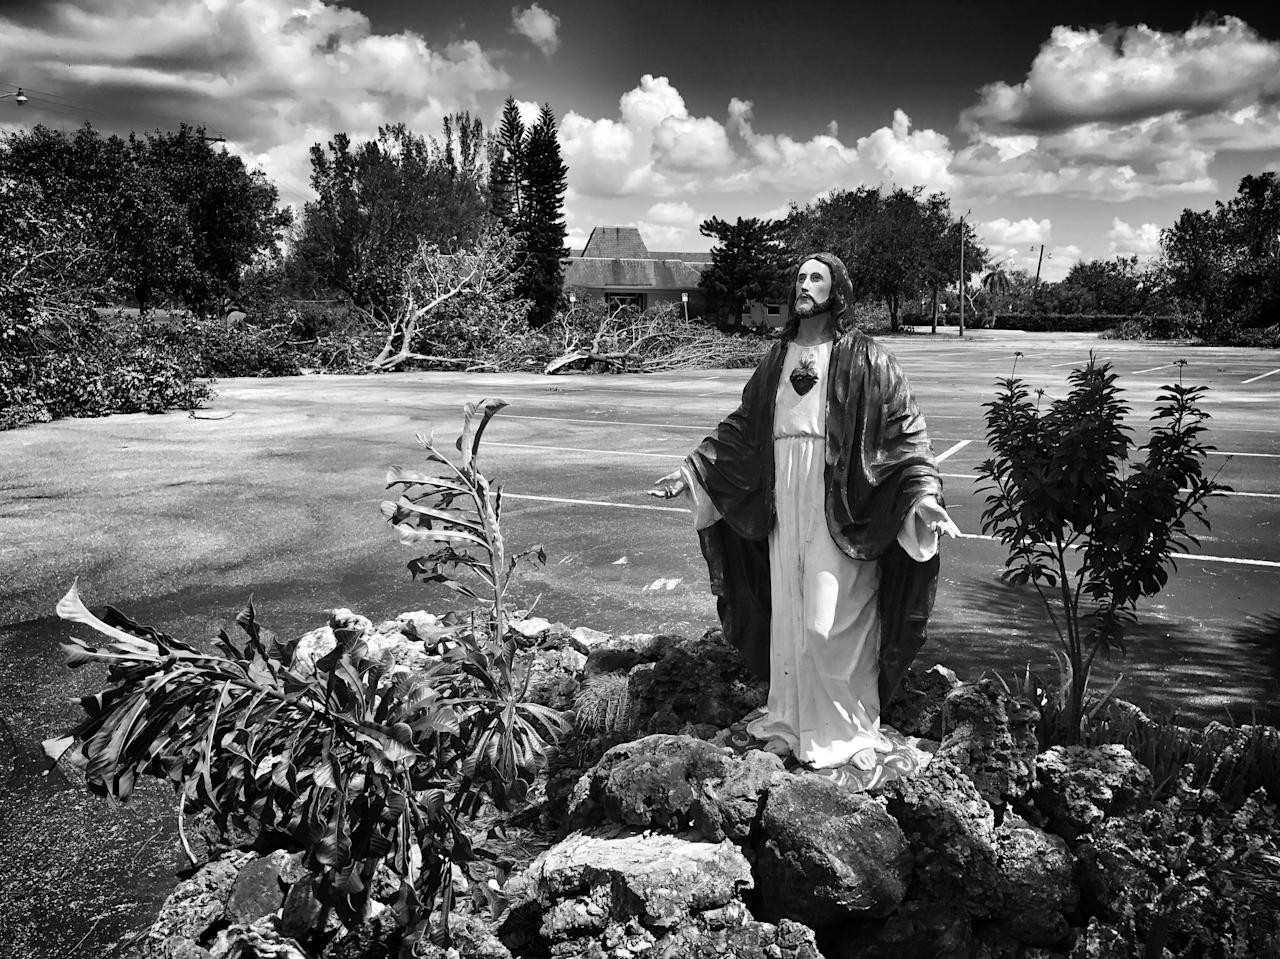 <p>A statue of Jesus stands amid storm debris from Hurricane Irma in Lehigh Acres, Fla. (Photo: Holly Bailey/Yahoo News) </p>